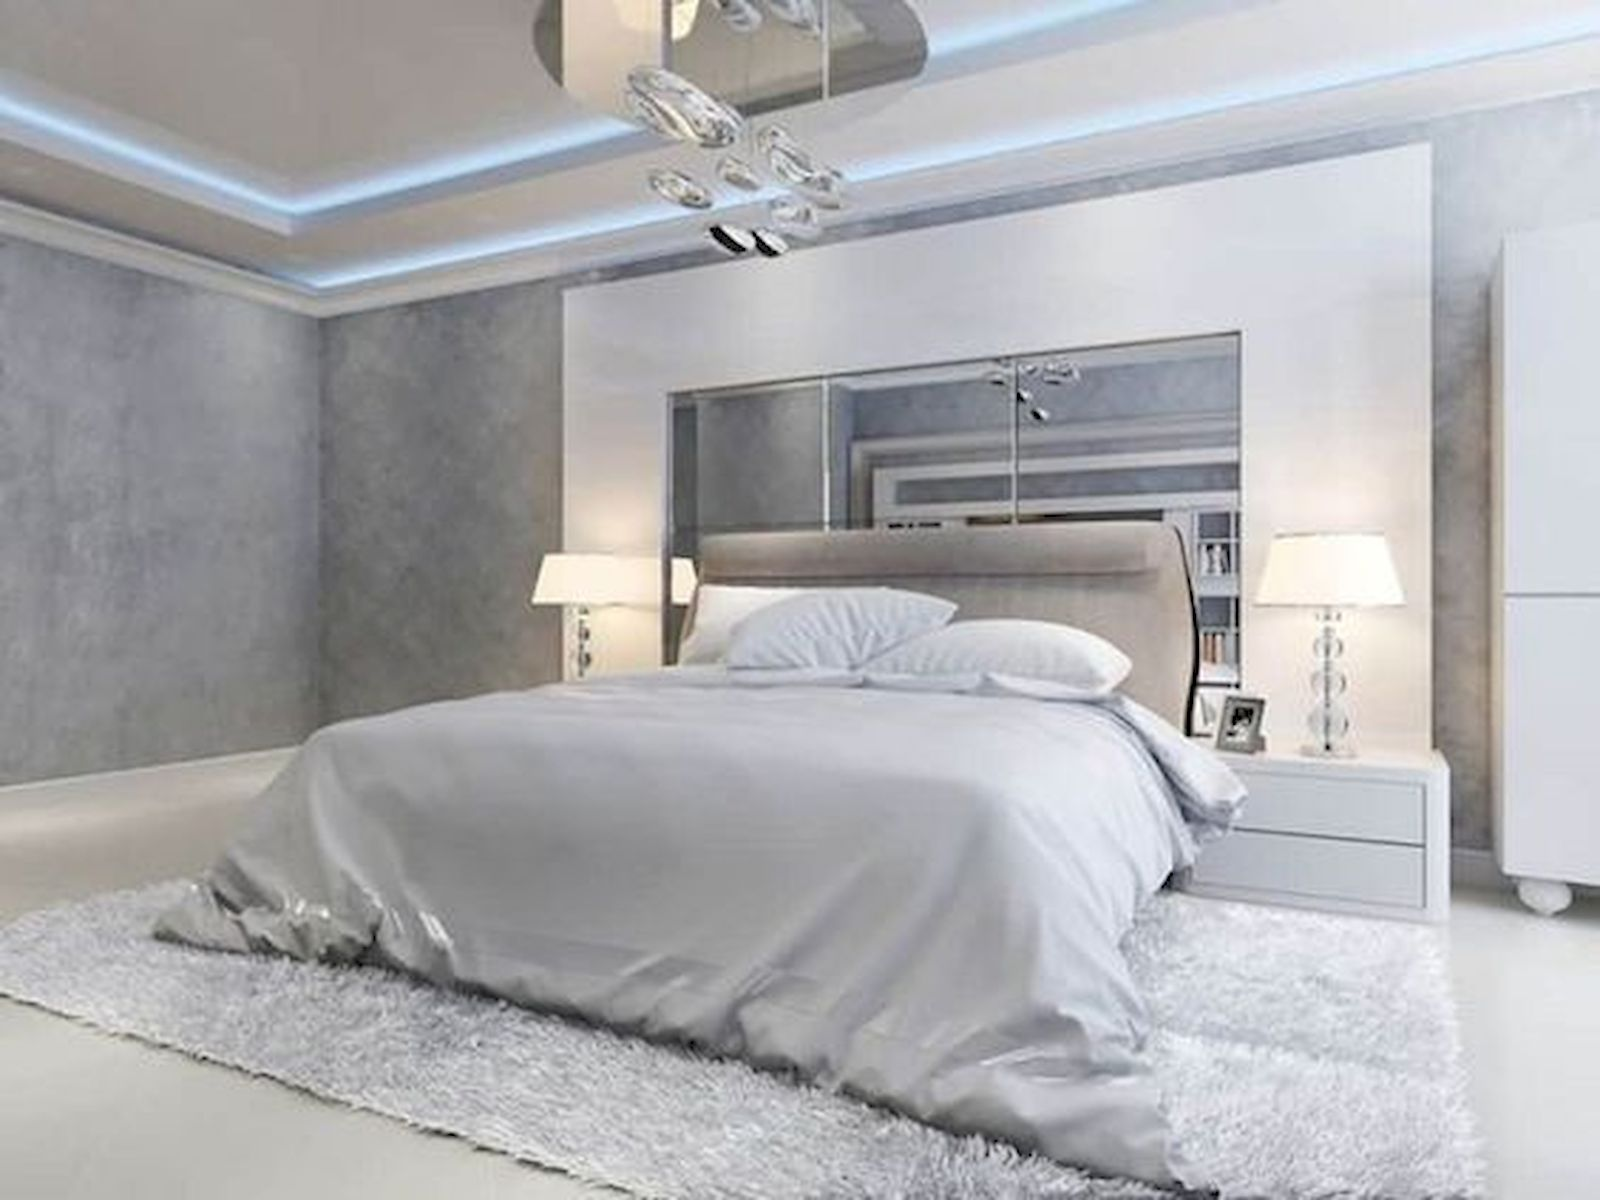 44 Awesome White Master Bedroom Design and Decor Ideas For Any Home Design (1)